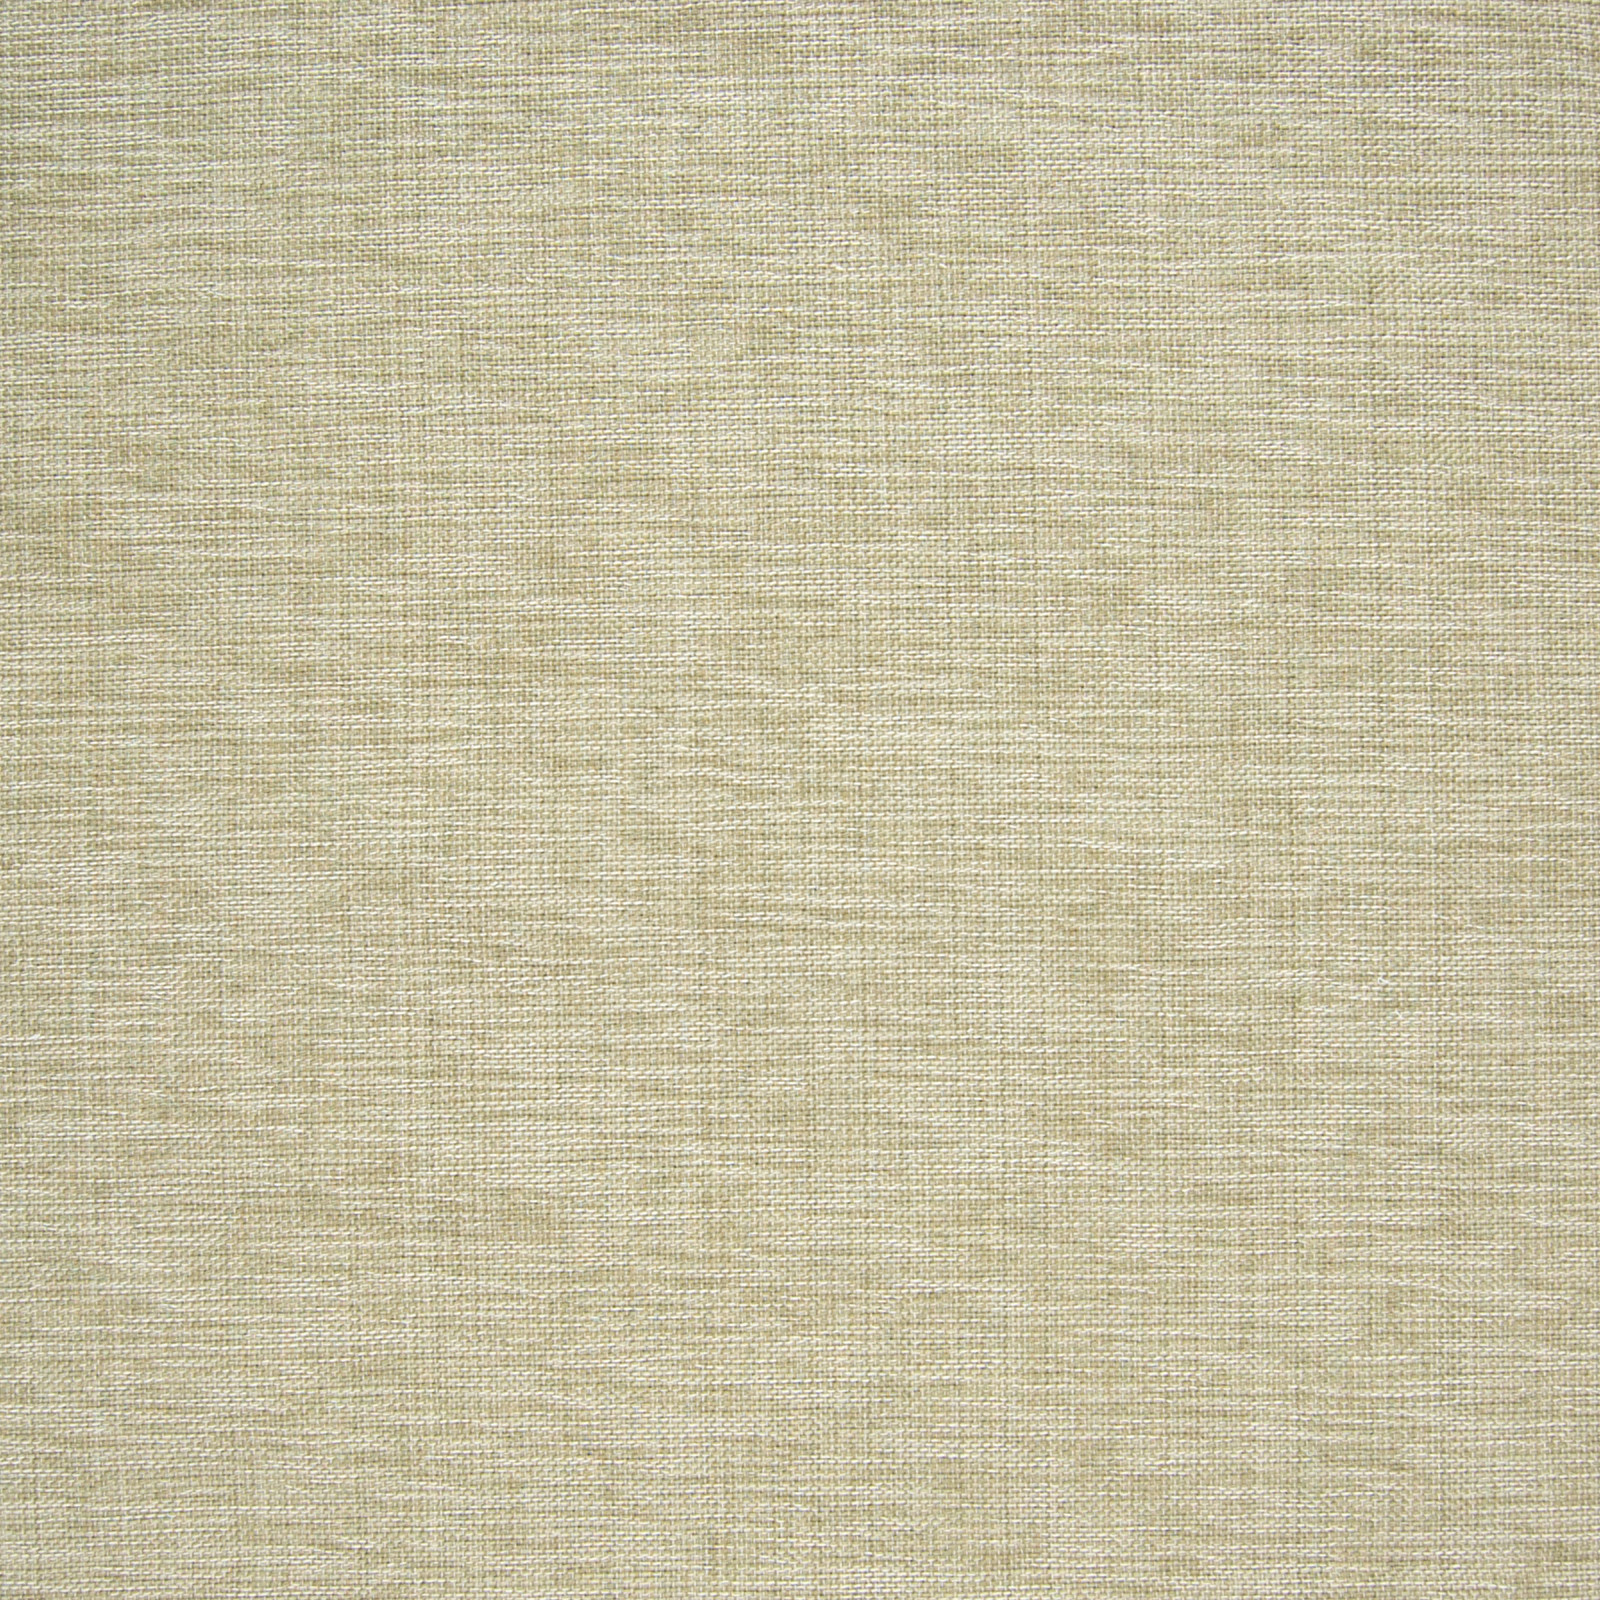 B7317 Hemp Greenhouse Fabrics